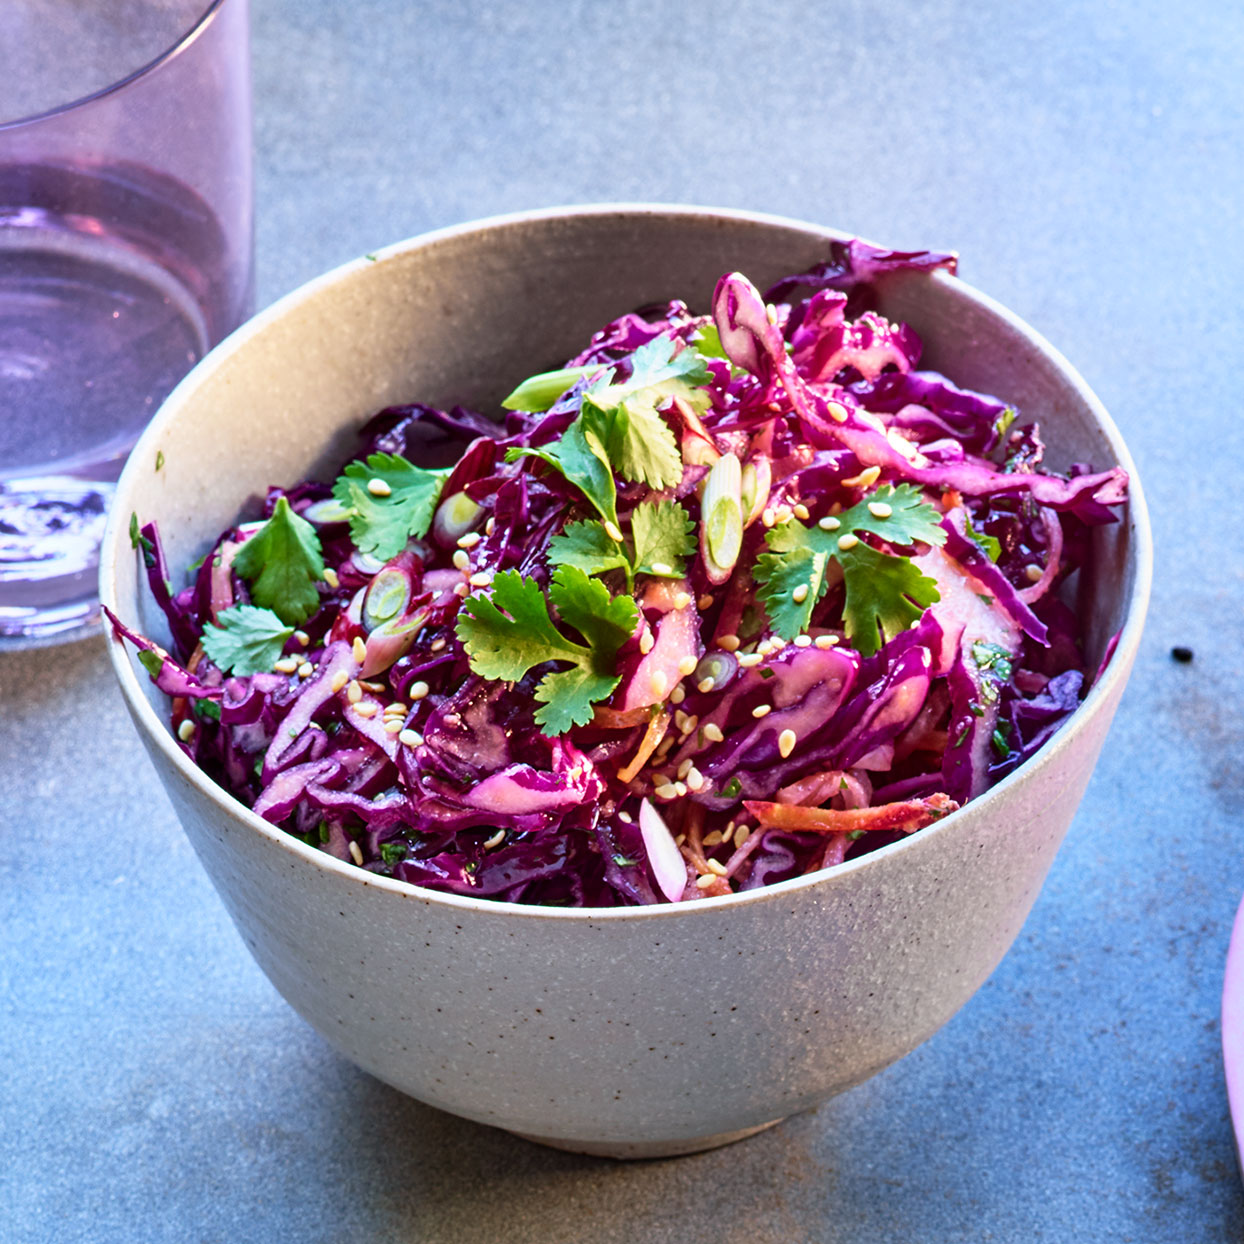 Combining a trio of purple vegetables--cabbage, carrots and daikon--makes for a stunning slaw recipe. It would be equally delicious tossed with a classic creamy dressing. Source: EatingWell Magazine, April 2020